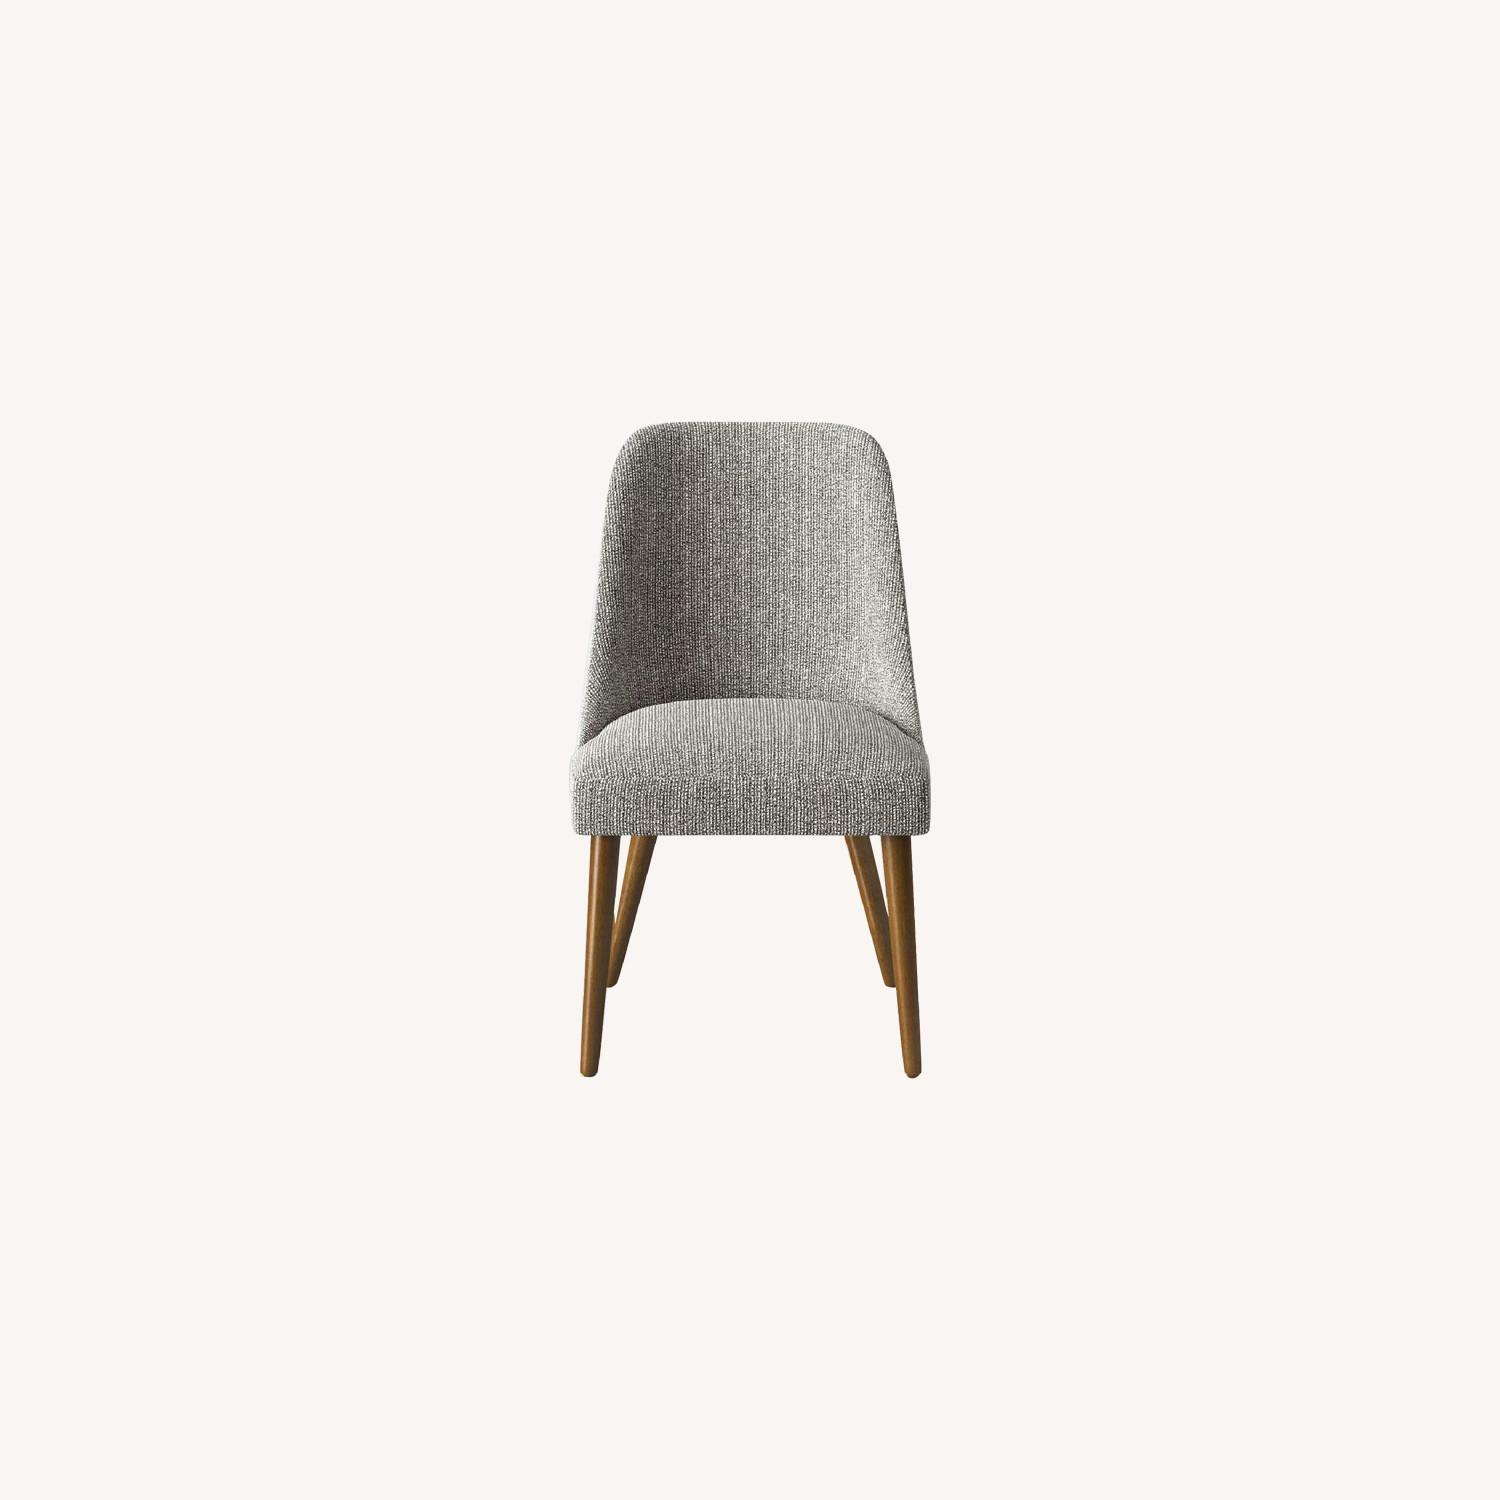 Target Project 62 Dining Chairs - image-0